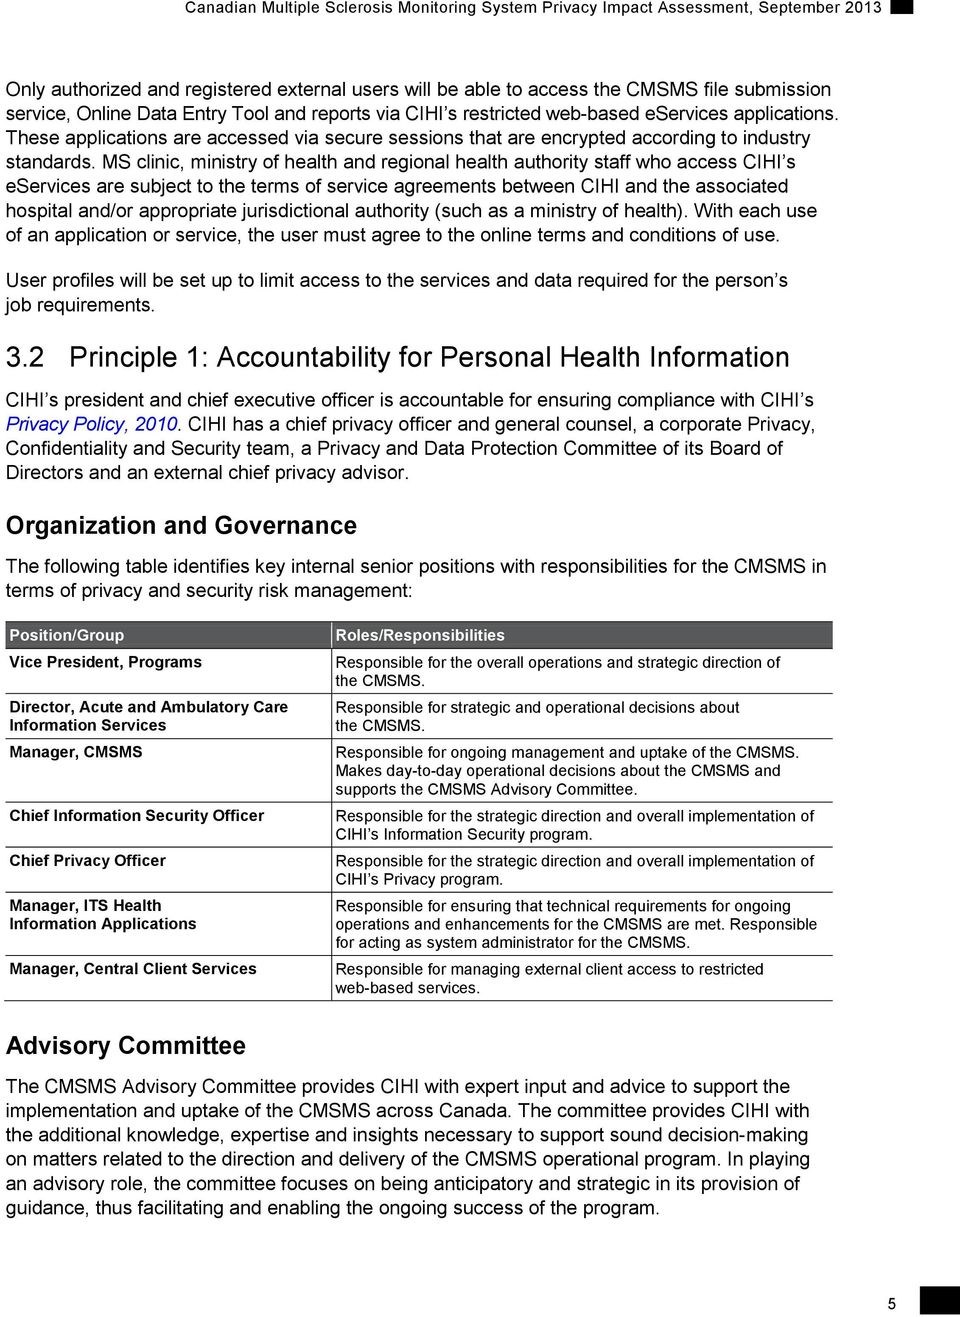 MS clinic, ministry of health and regional health authority staff who access CIHI s eservices are subject to the terms of service agreements between CIHI and the associated hospital and/or